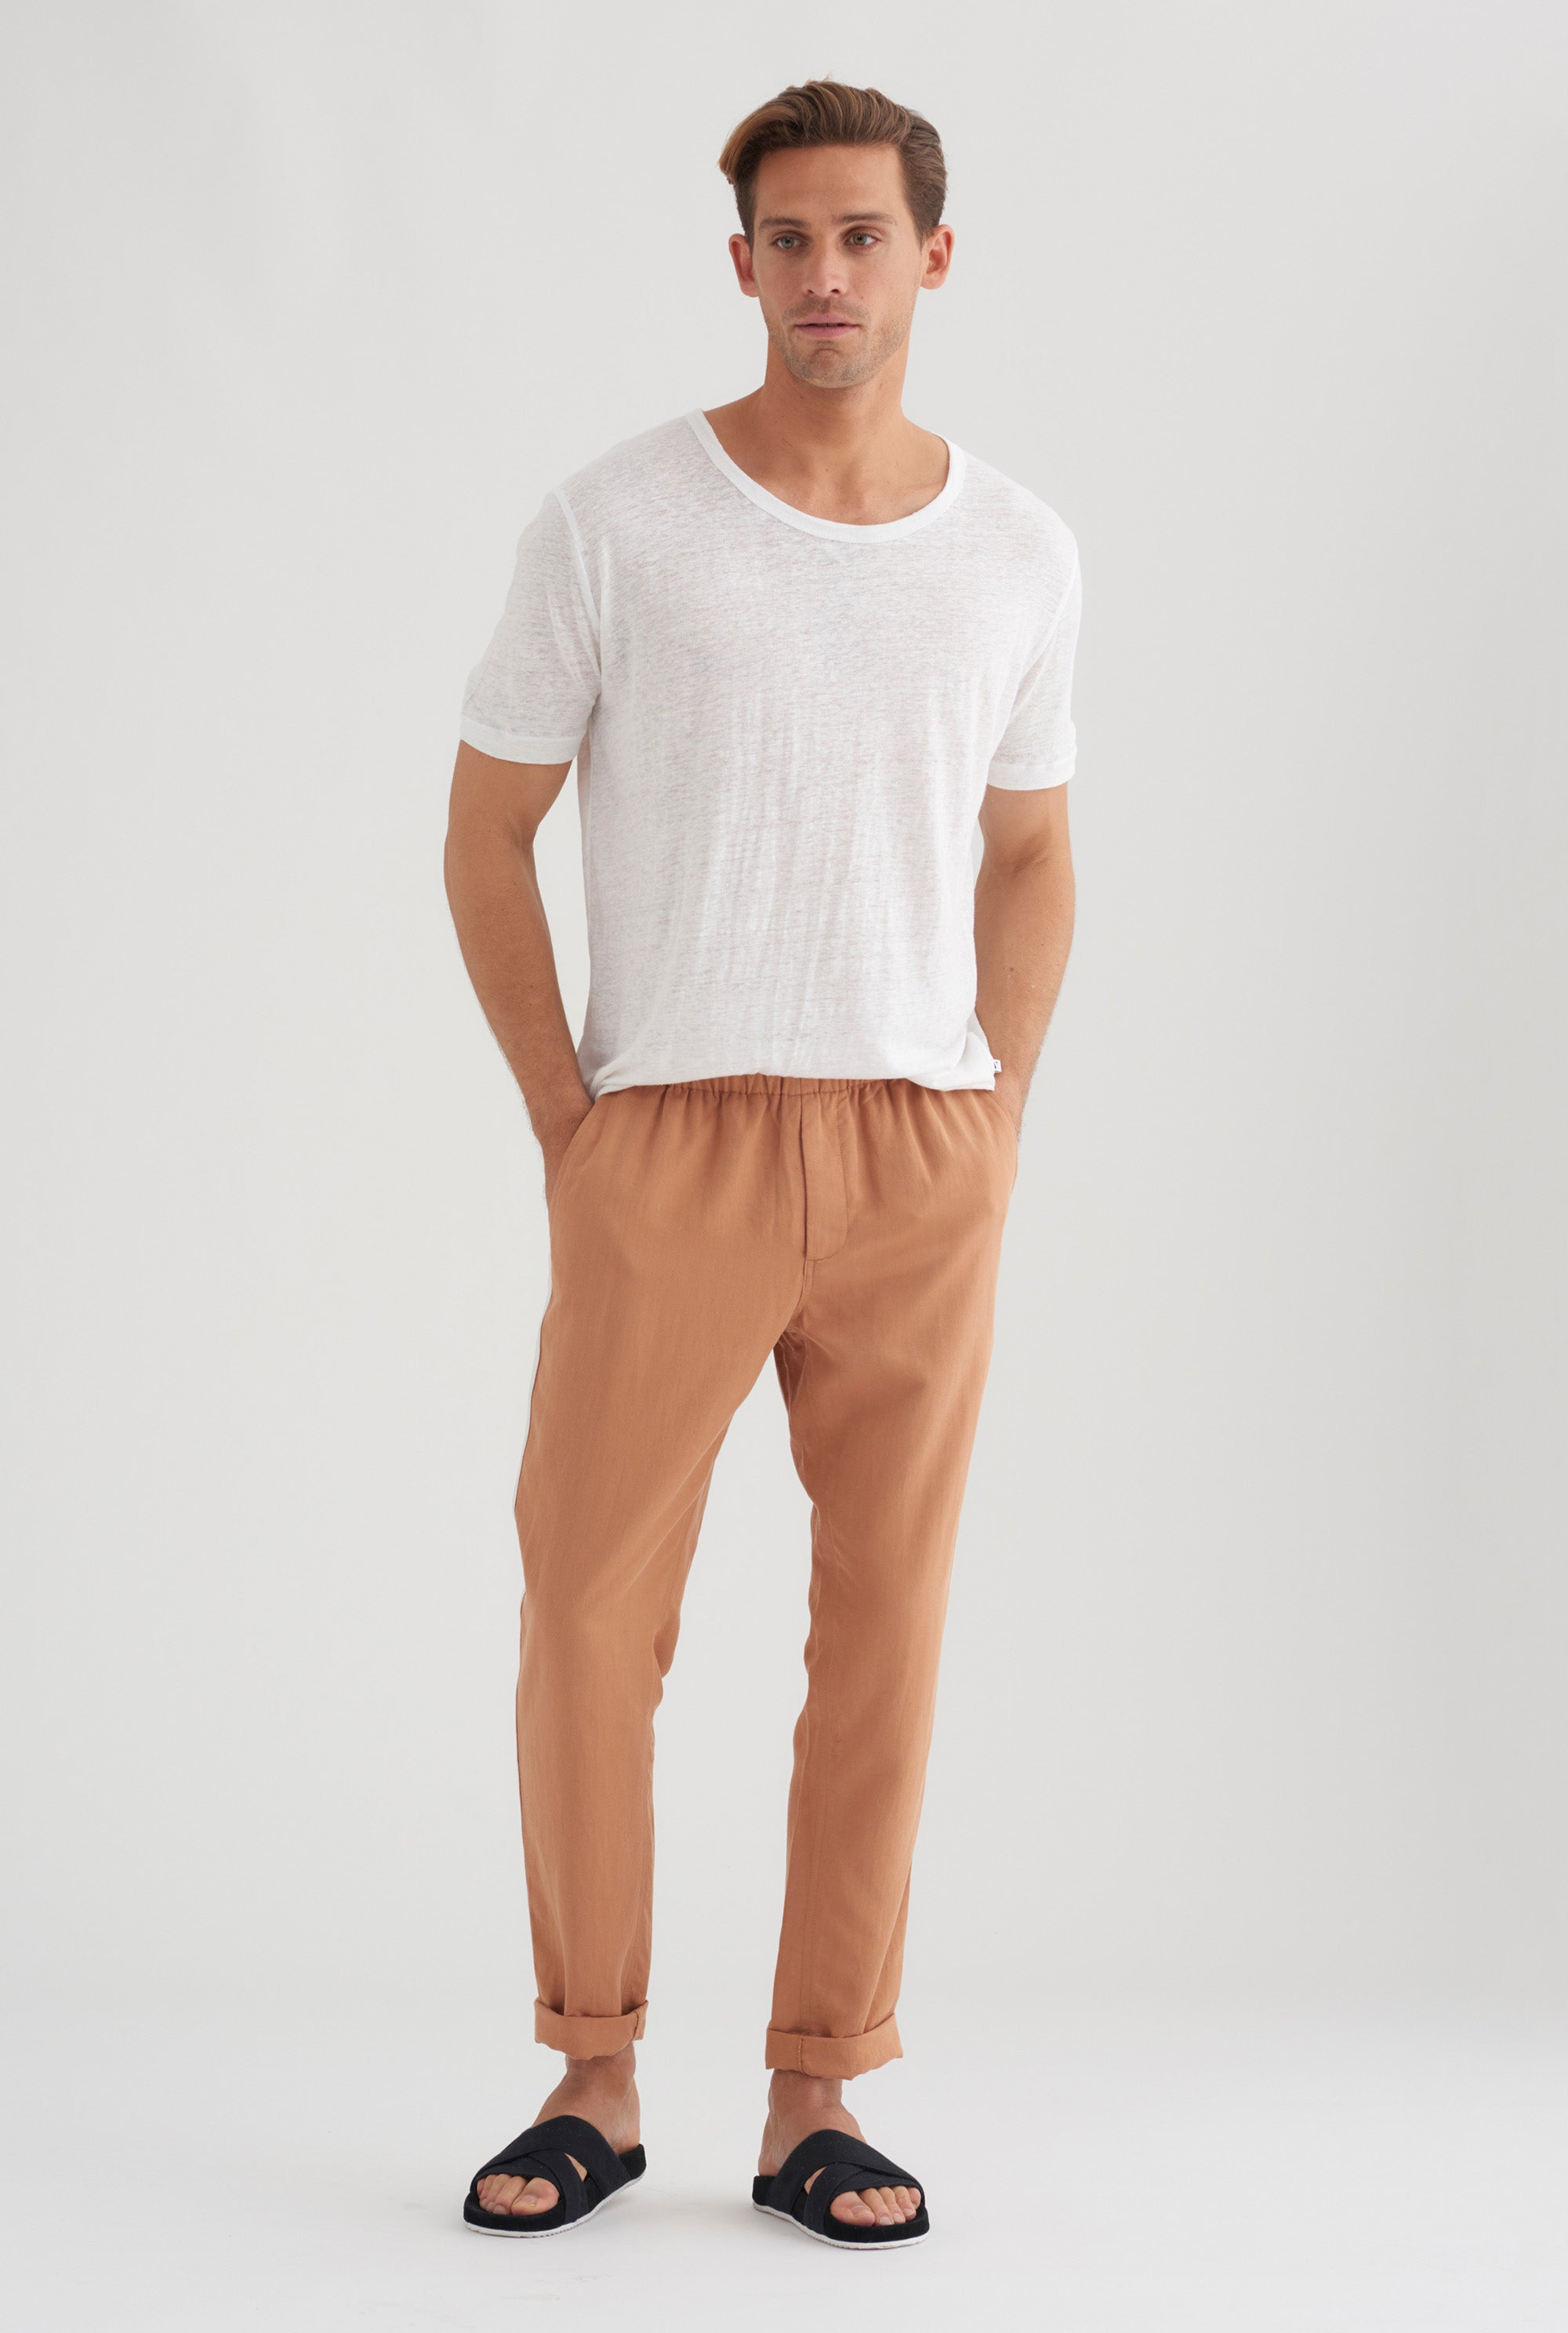 Tencel Lounge Chino - Biscuit / White Stripe